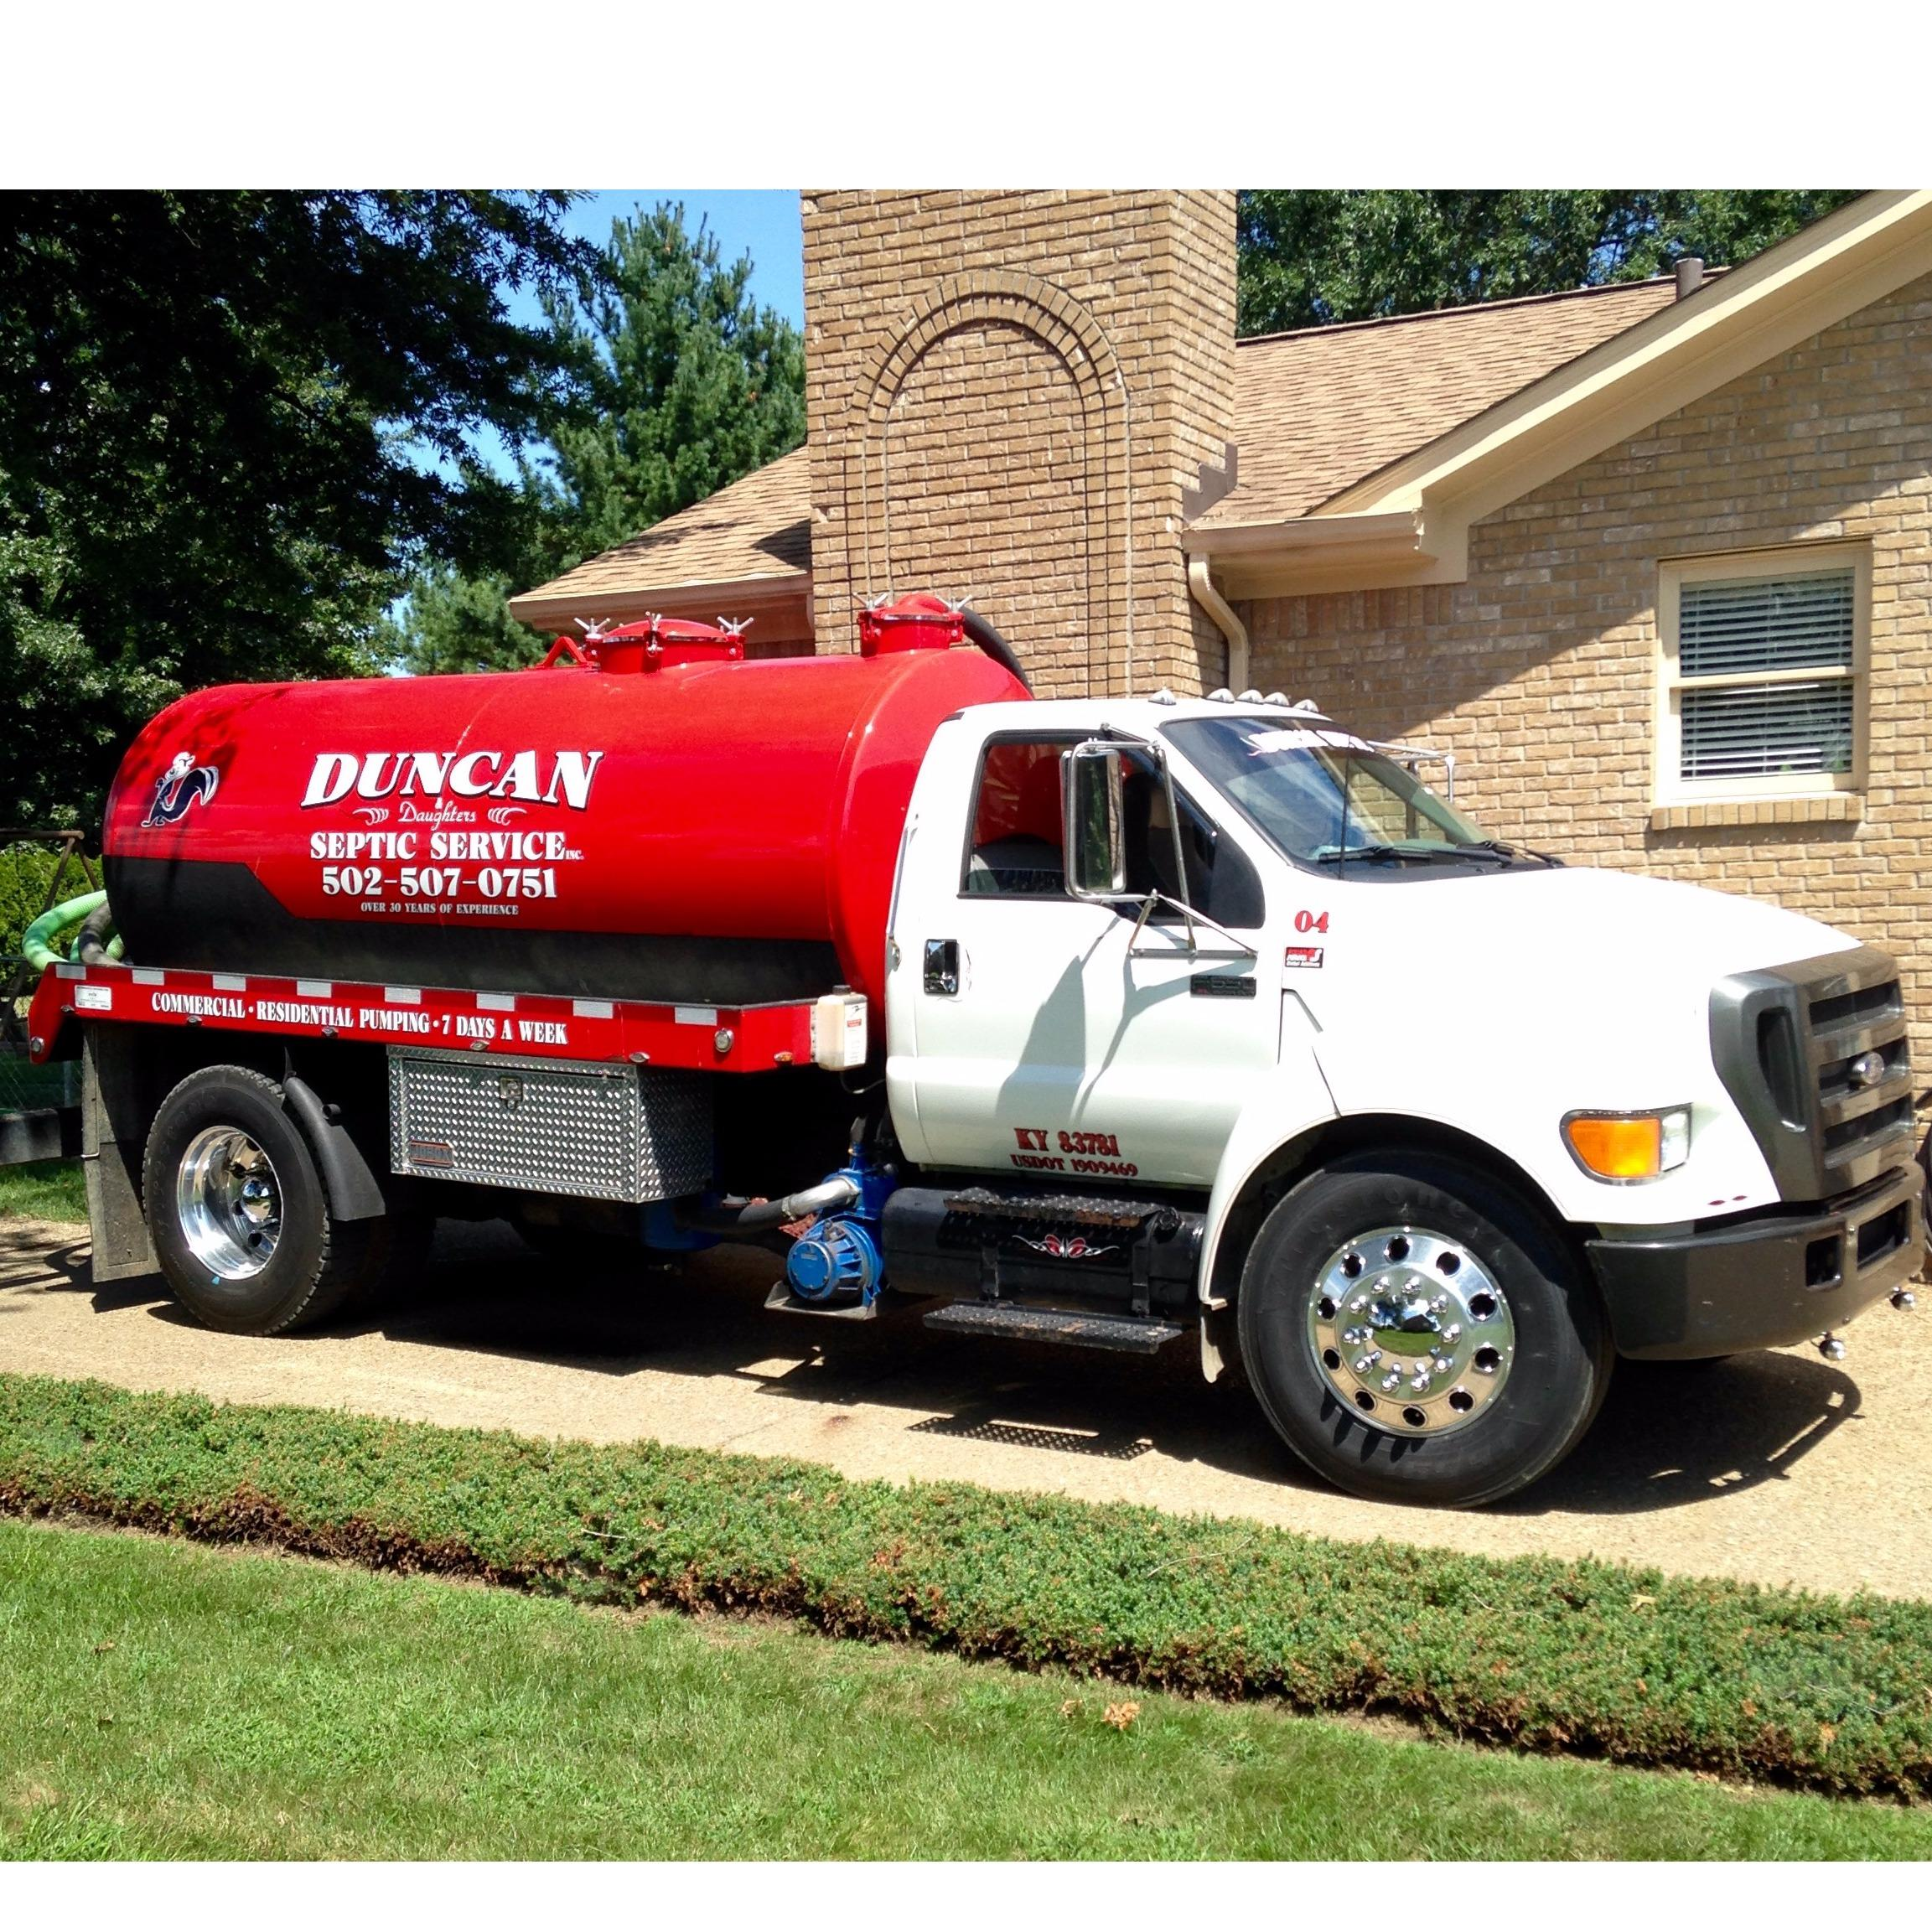 Duncan Septic Service